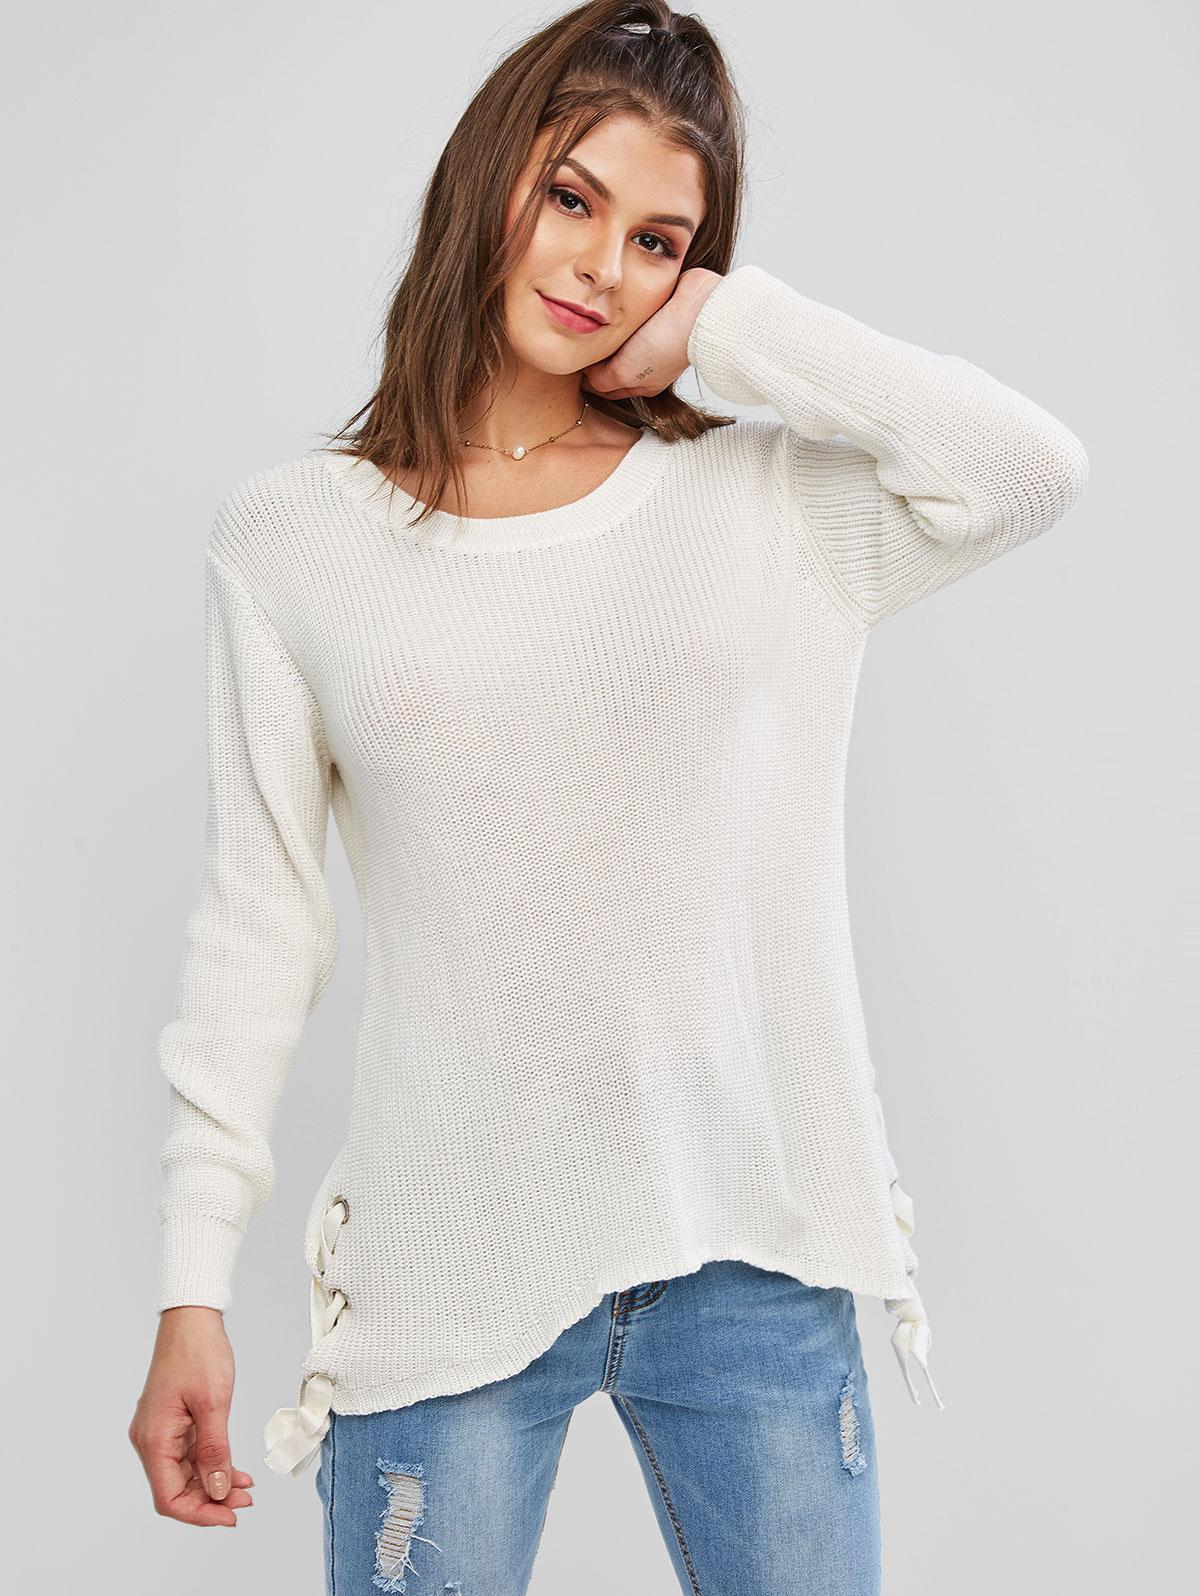 Grommet Lace Up Asymmetrical Textured Sweater